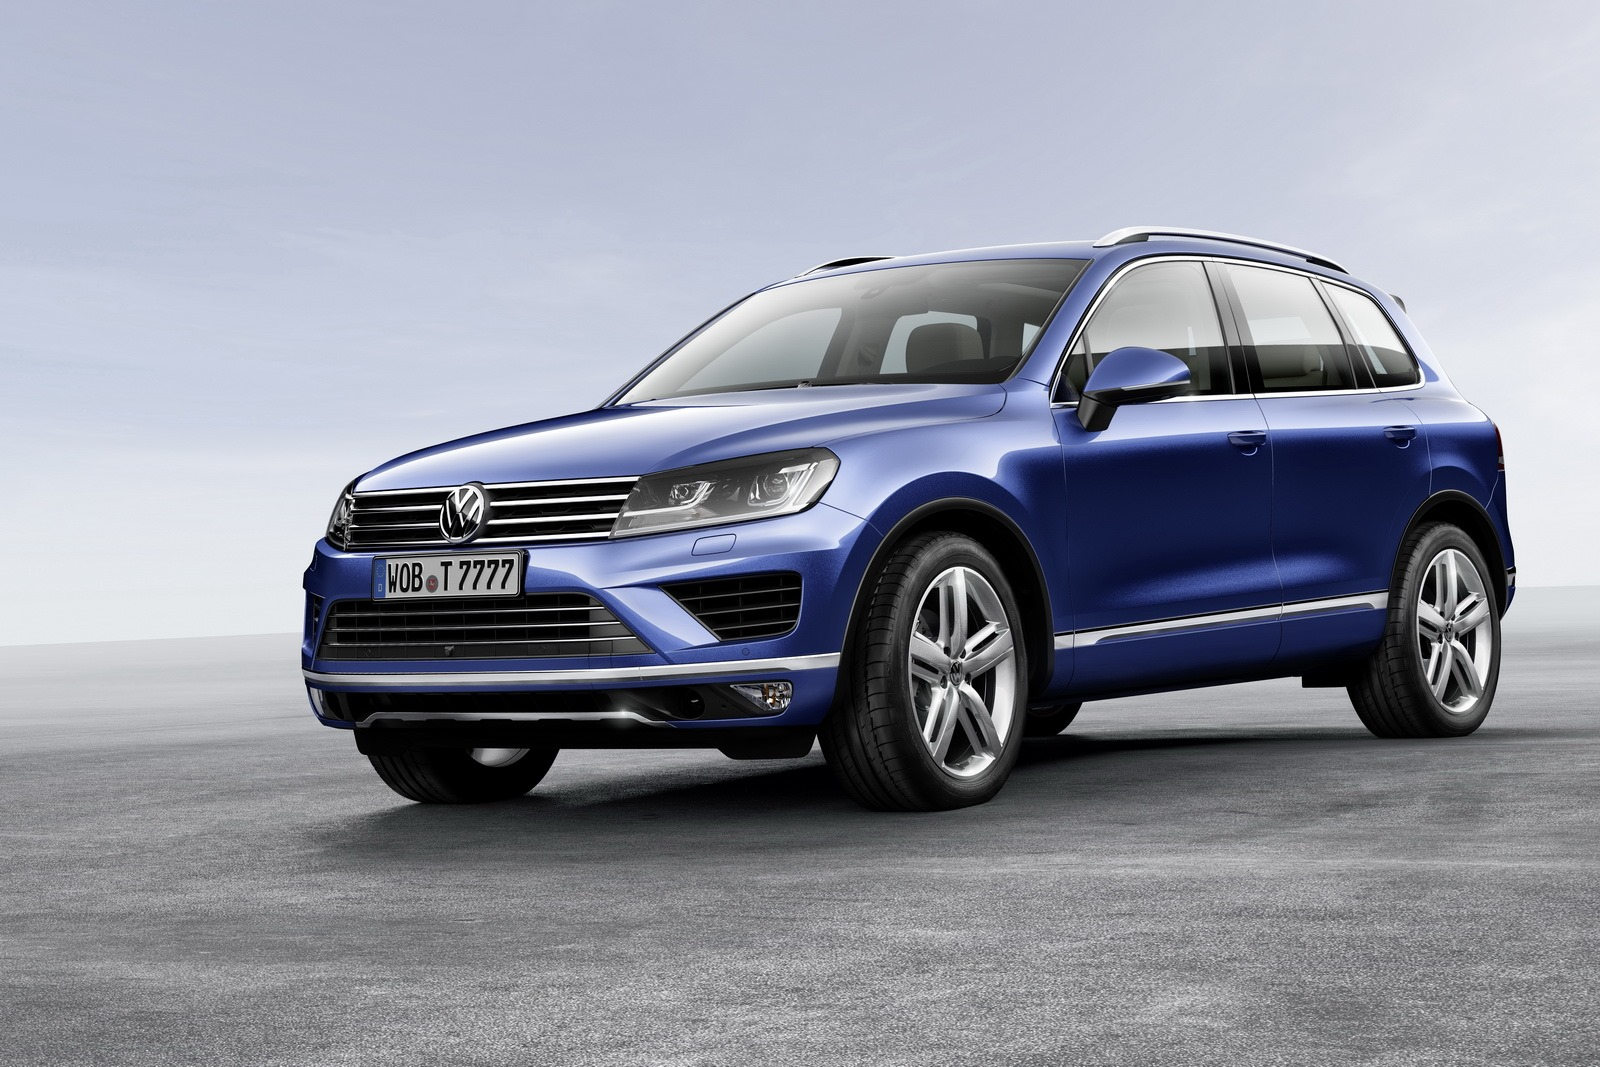 2015 volkswagen touareg facelift brings new features. Black Bedroom Furniture Sets. Home Design Ideas